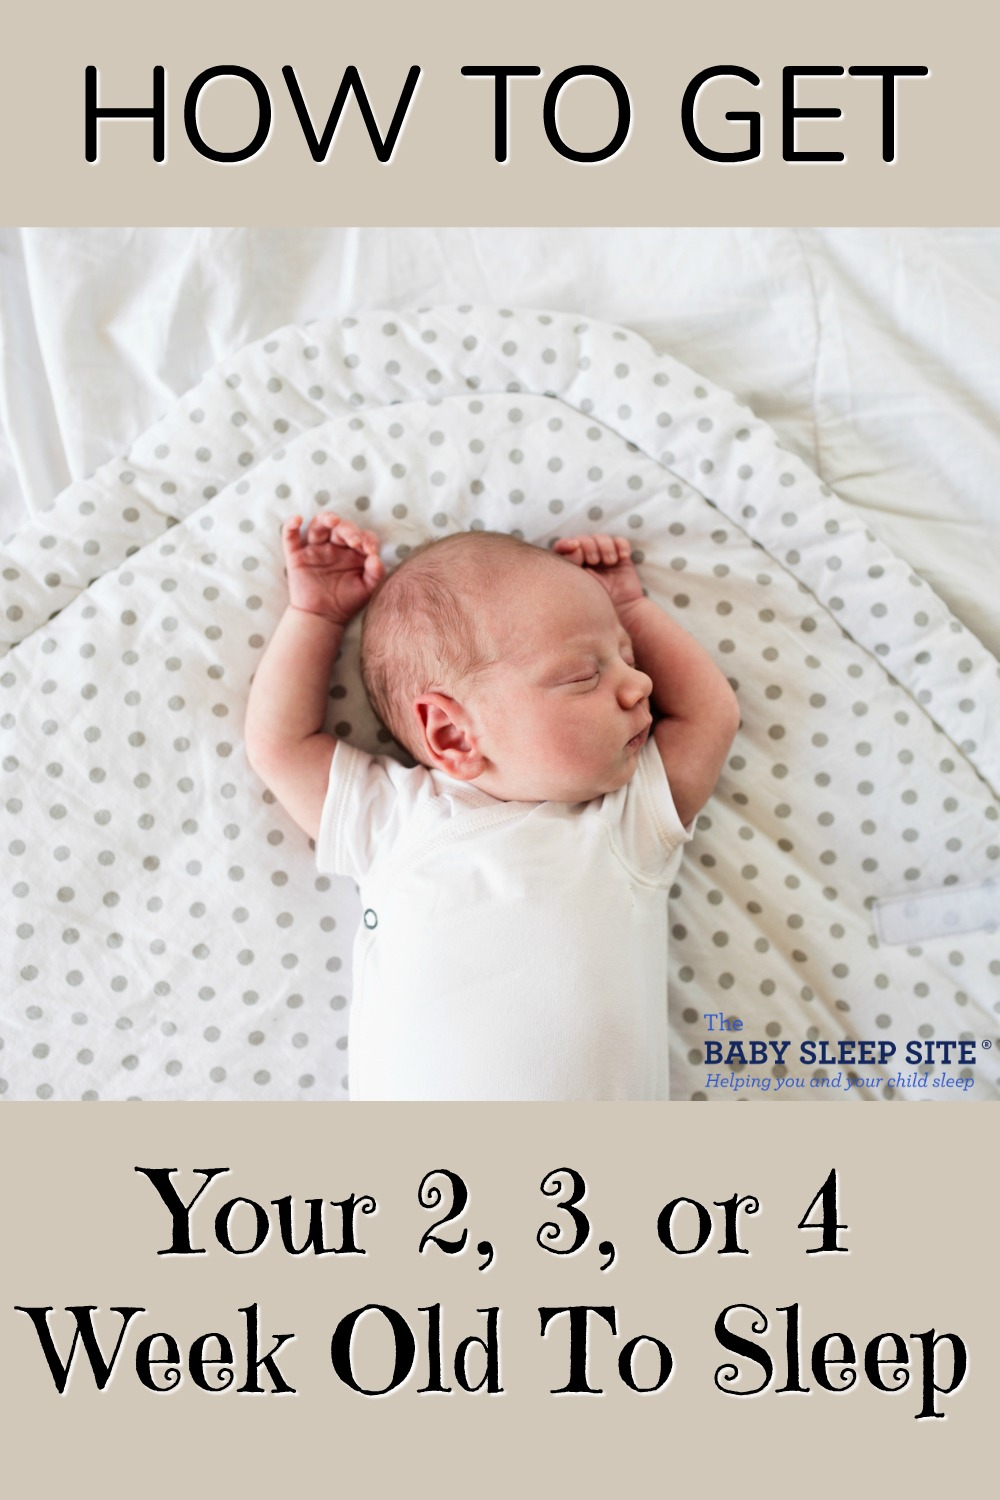 How to Get My 2, 3, or 4 Week Old To Sleep